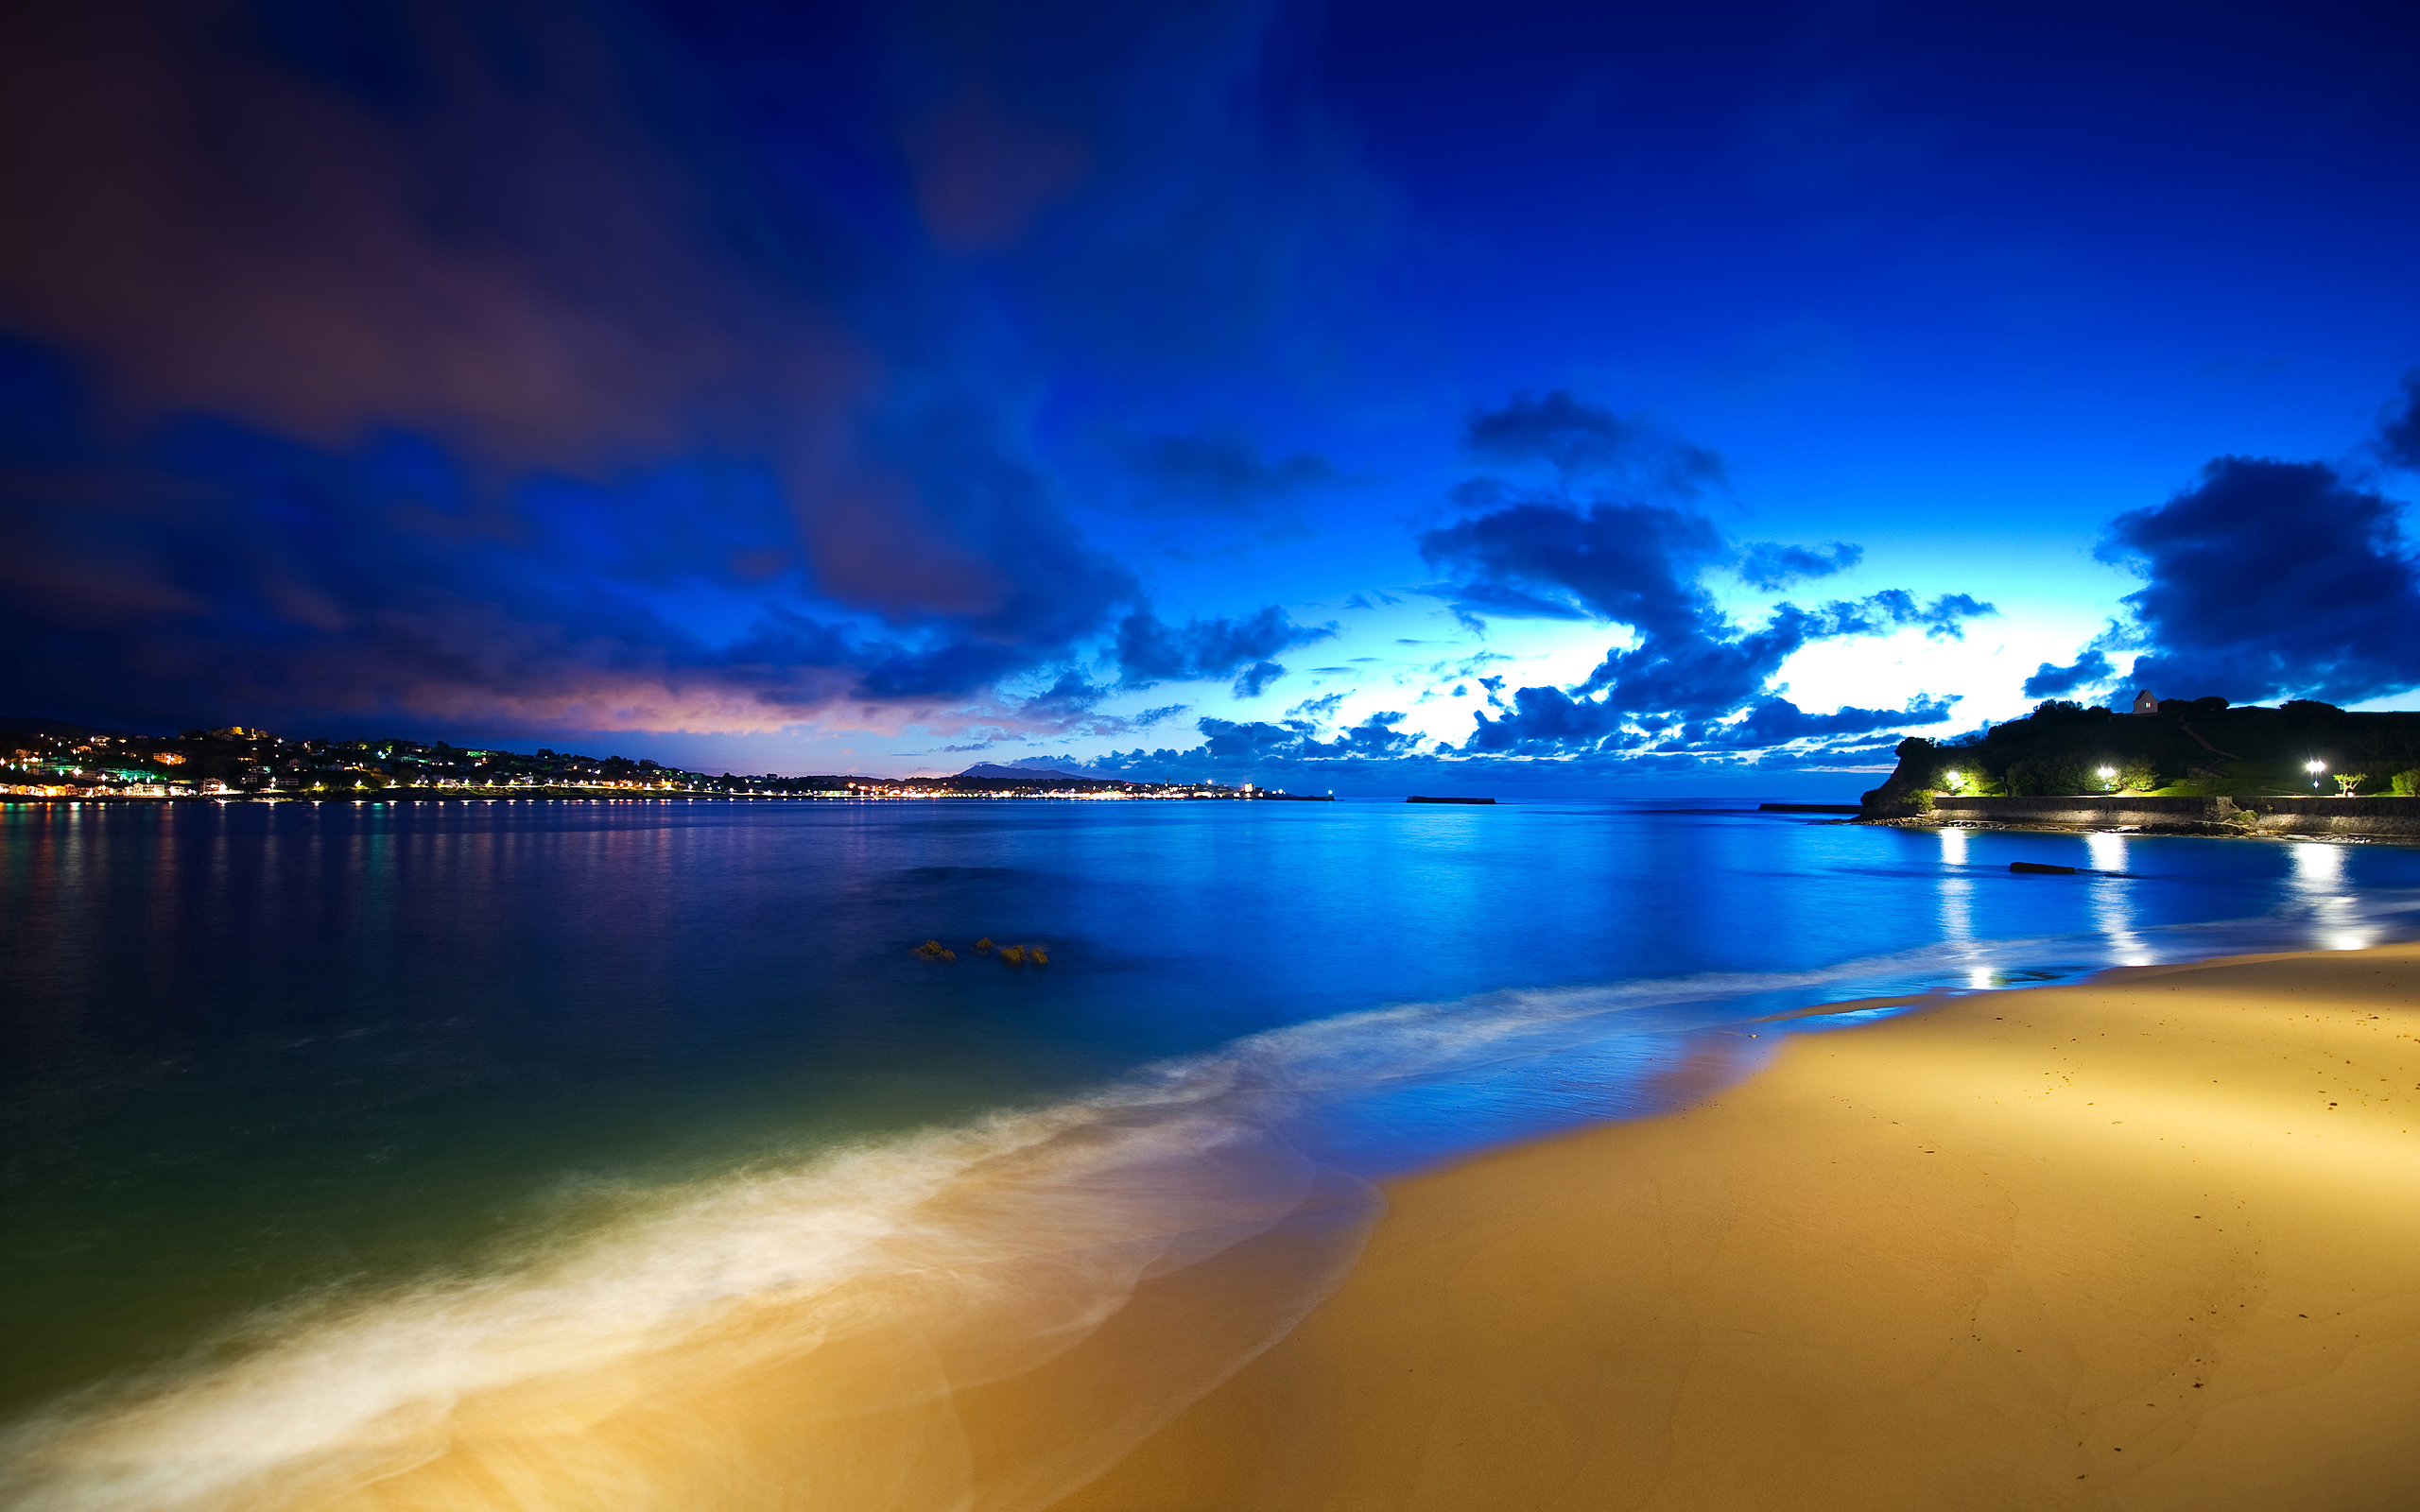 Ocean Beach At Night Wallpaper 2560x1600